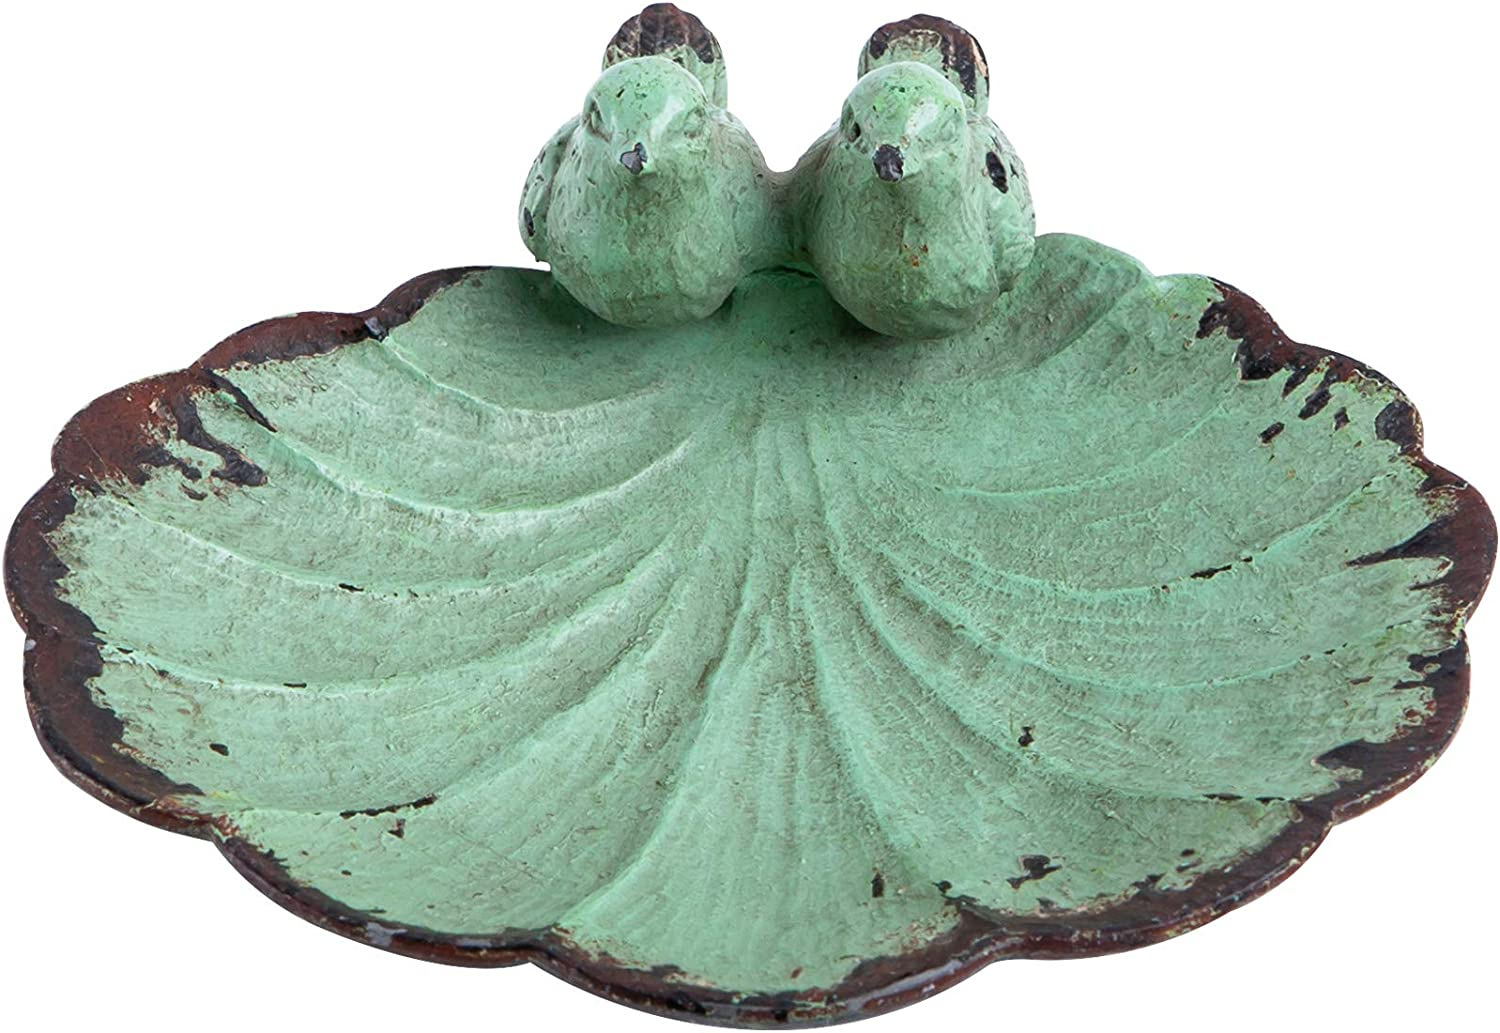 "NIKKY HOME Decorative Jewelry Dish with Metal Distressed Bird and Leaf, 4.37"" x 4.37"" x 1.62"", Green"